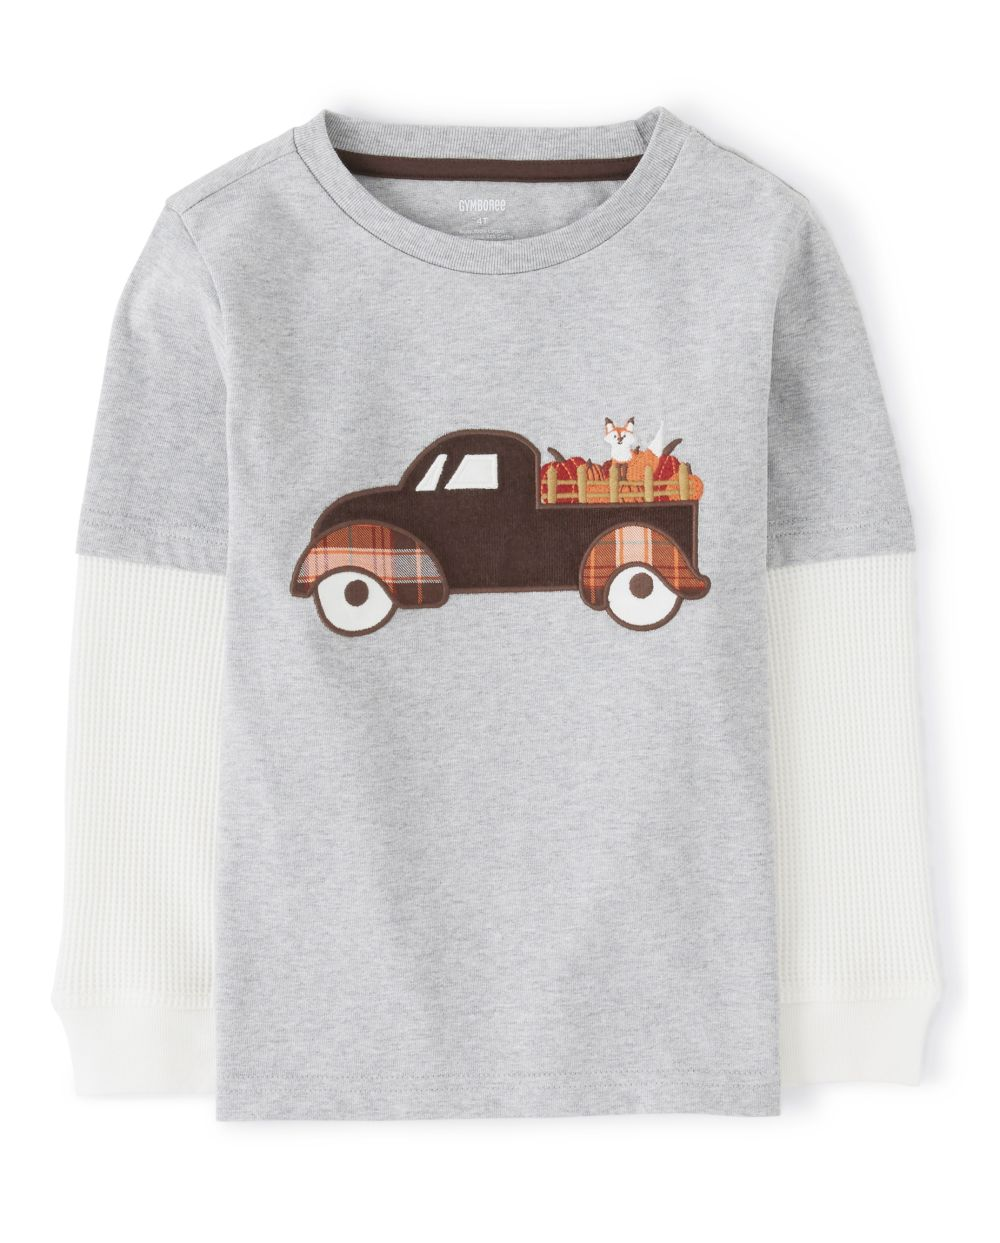 Boys Embroidered Truck 2 In 1 Top - Harvest